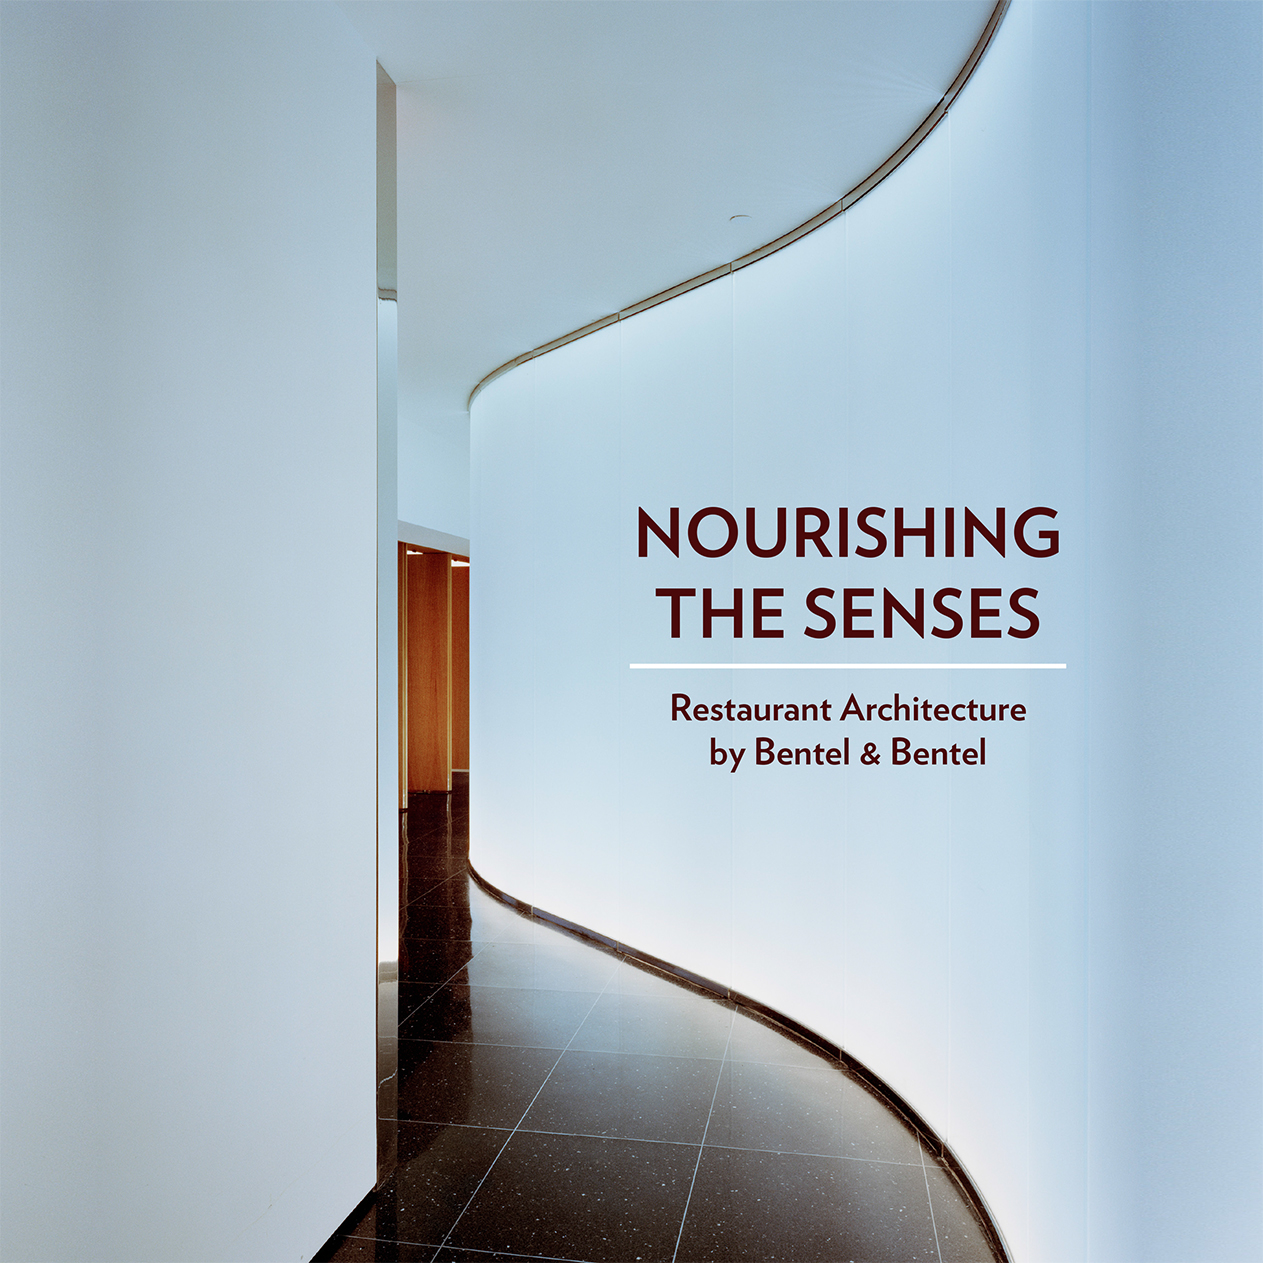 Our Latest Project - Nourishing the Senses